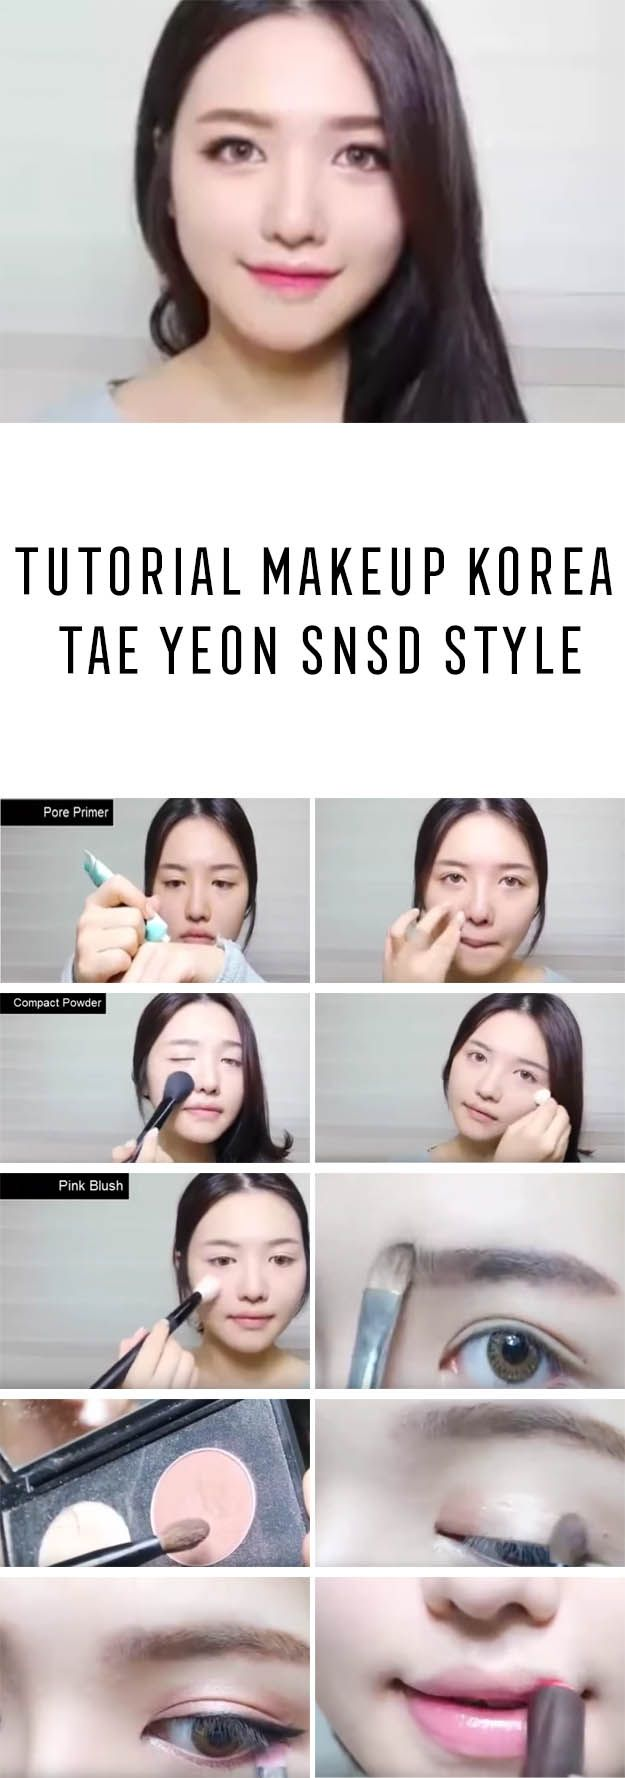 Best Korean Makeup Tutorials - Tutorial Makeup Korea - Tae Yeon Snsd Style - Natural Step By Step Tutorials For Ulzzang, Pony, Puppy Eyes, Eyeshadows, Kpop, Eyebrows, Eyeliner and even Hairstyles. Super Cute DIY And Easy Contouring, Foundation, and Simple Dewy Skin Help For Beginners - https://thegoddess.com/best-korean-makeup-tutorials